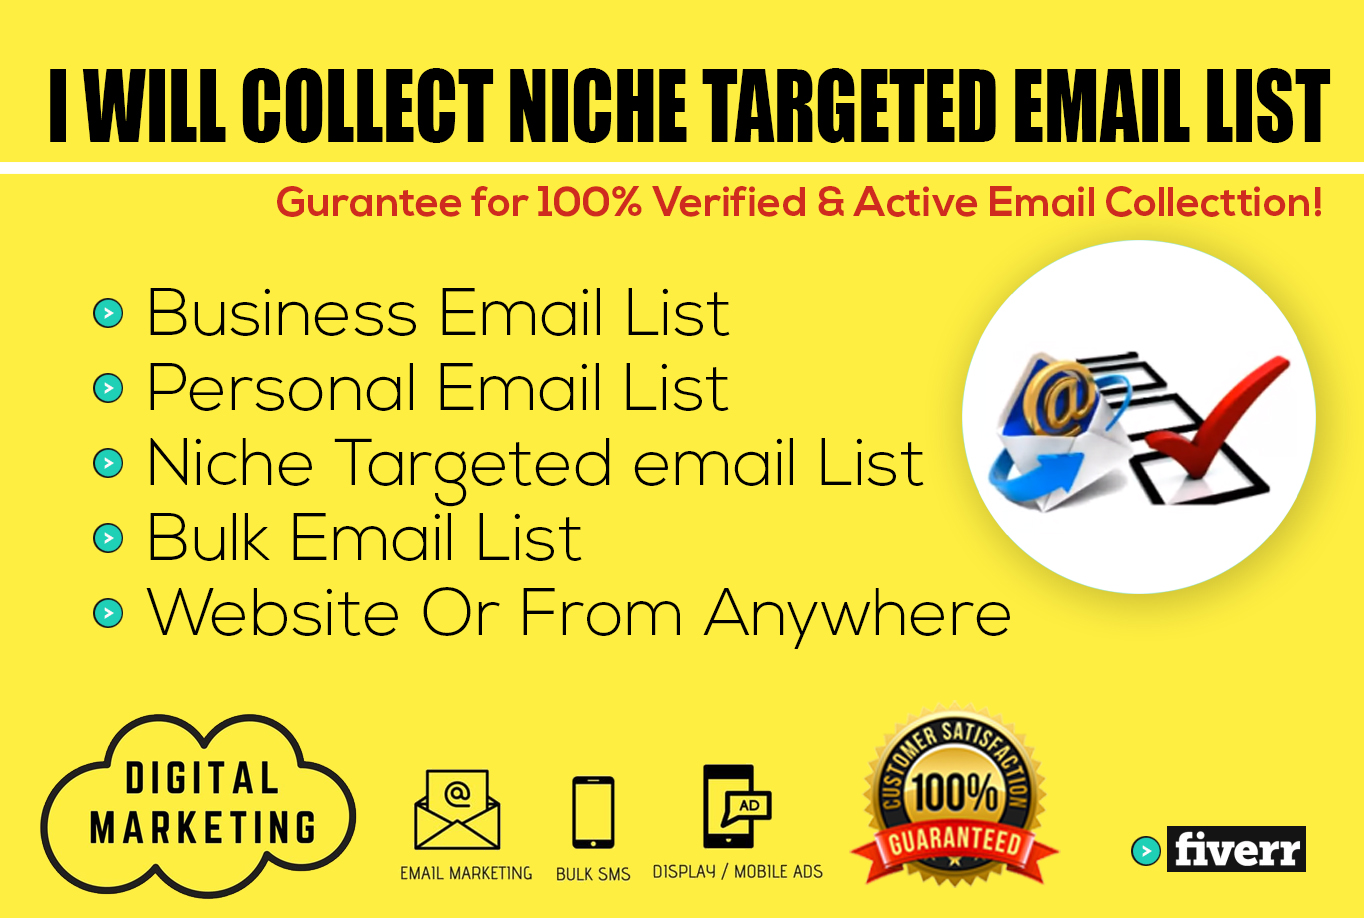 I will collect niche targeted email list clean and verified